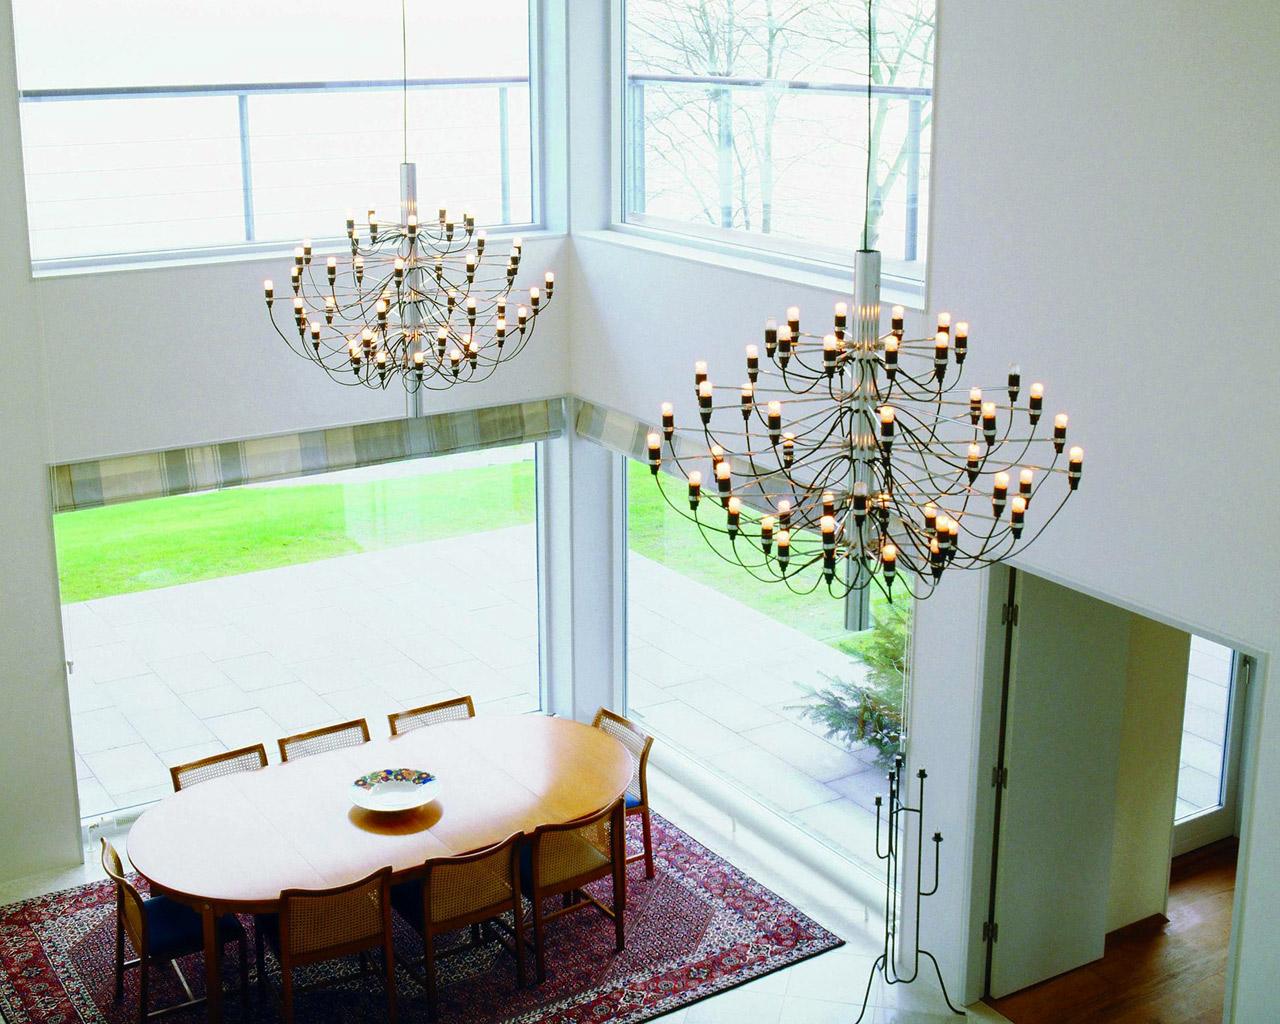 This chandelier is a design icon in its own right. Designed by Gino Sarfatti, one of the forerunners of lighting design Made in Italy. Throughout his career, Gino Sarfatti has designed more than...